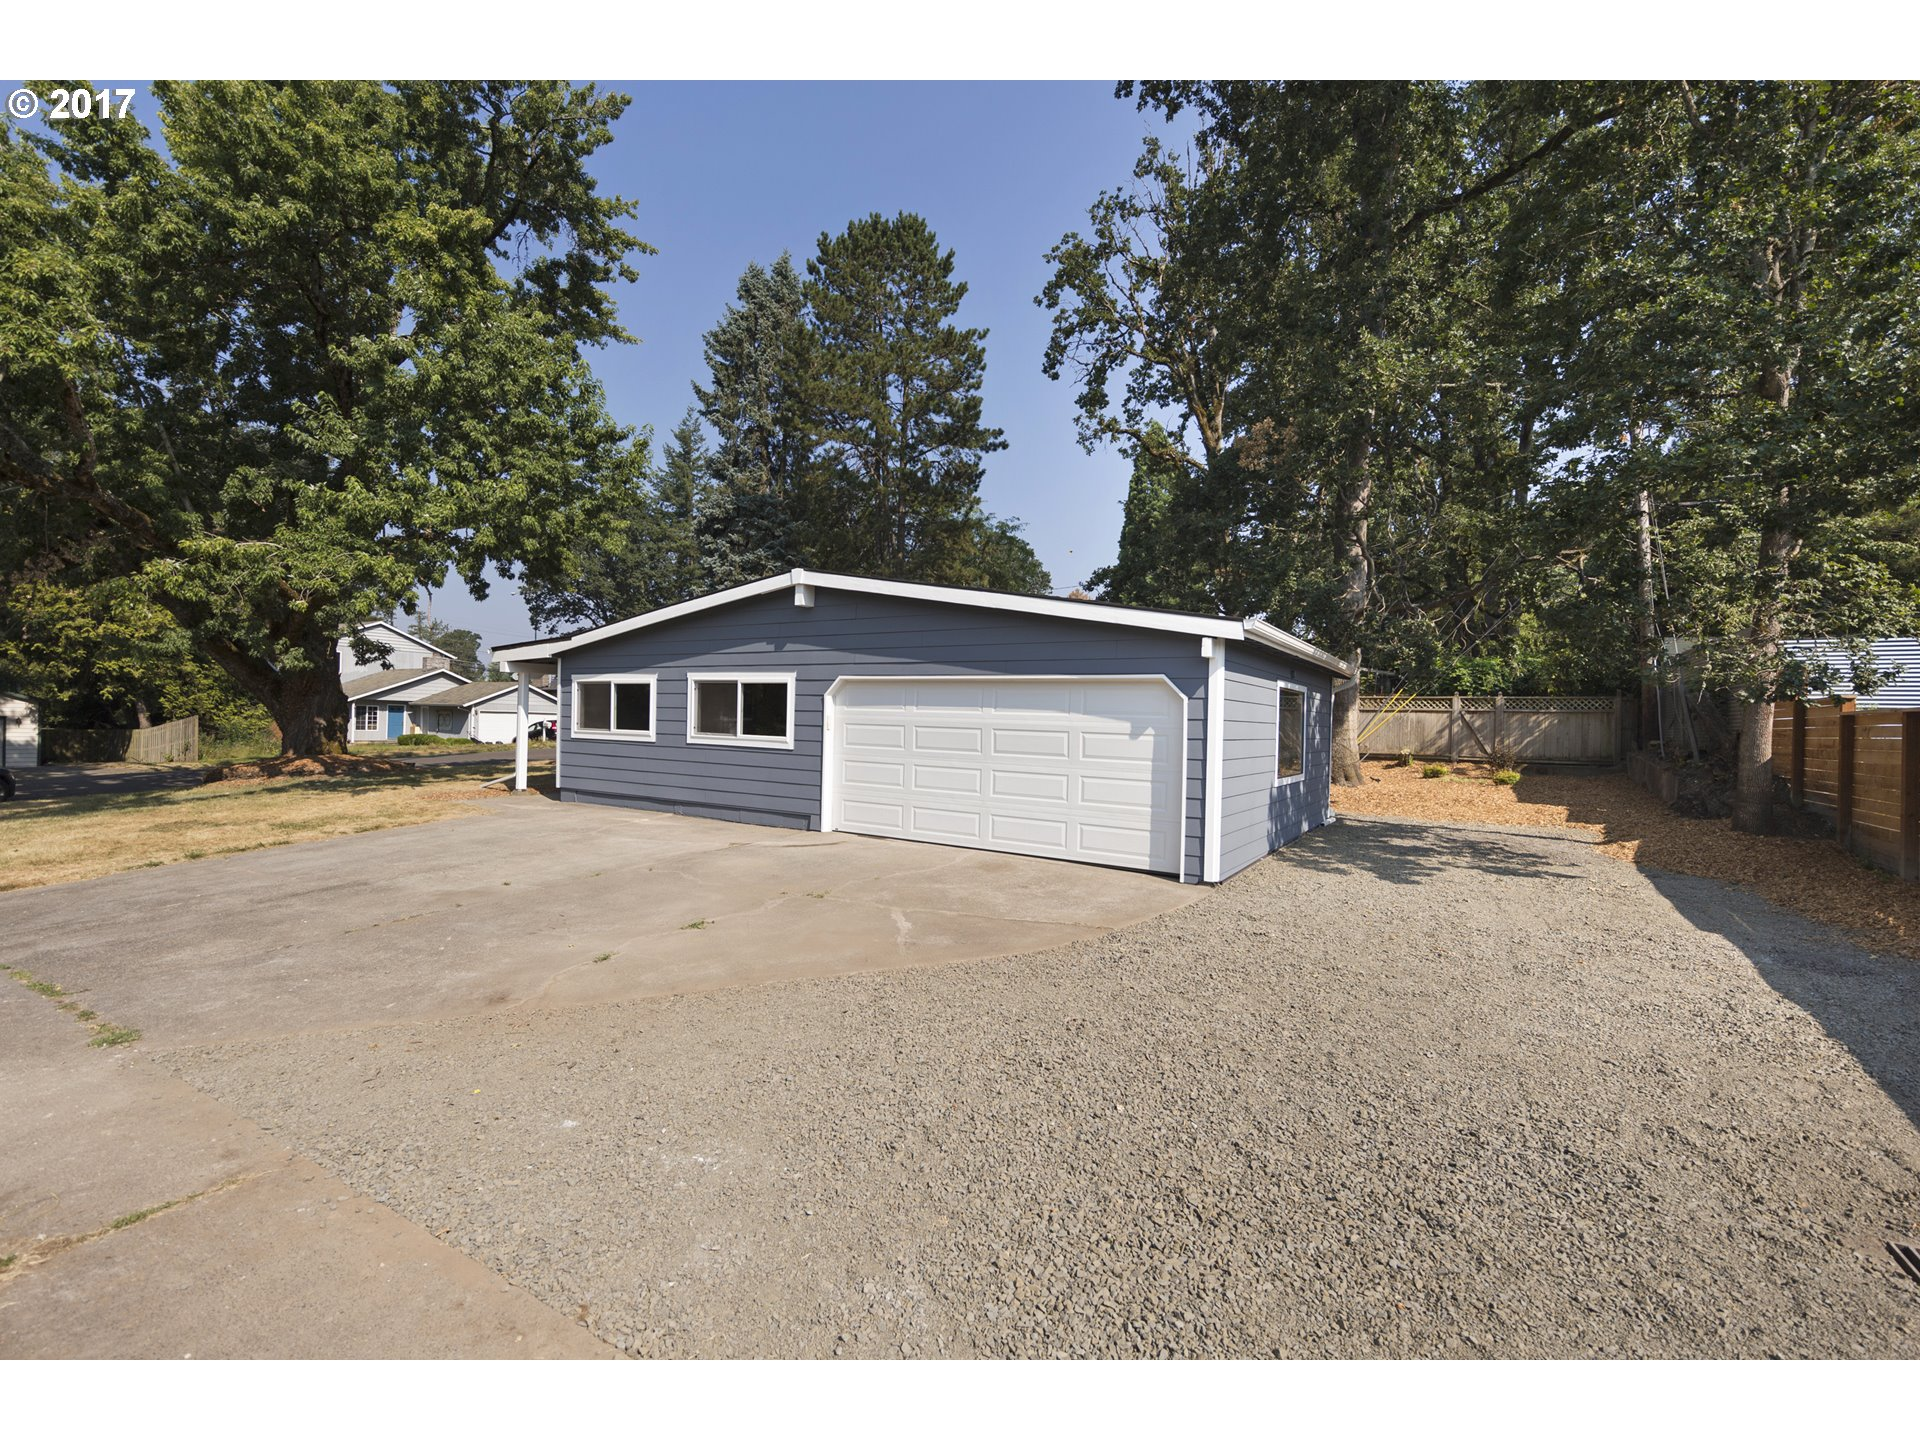 1668 sq. ft 3 bedrooms 2 bathrooms  House For Sale,Portland, OR